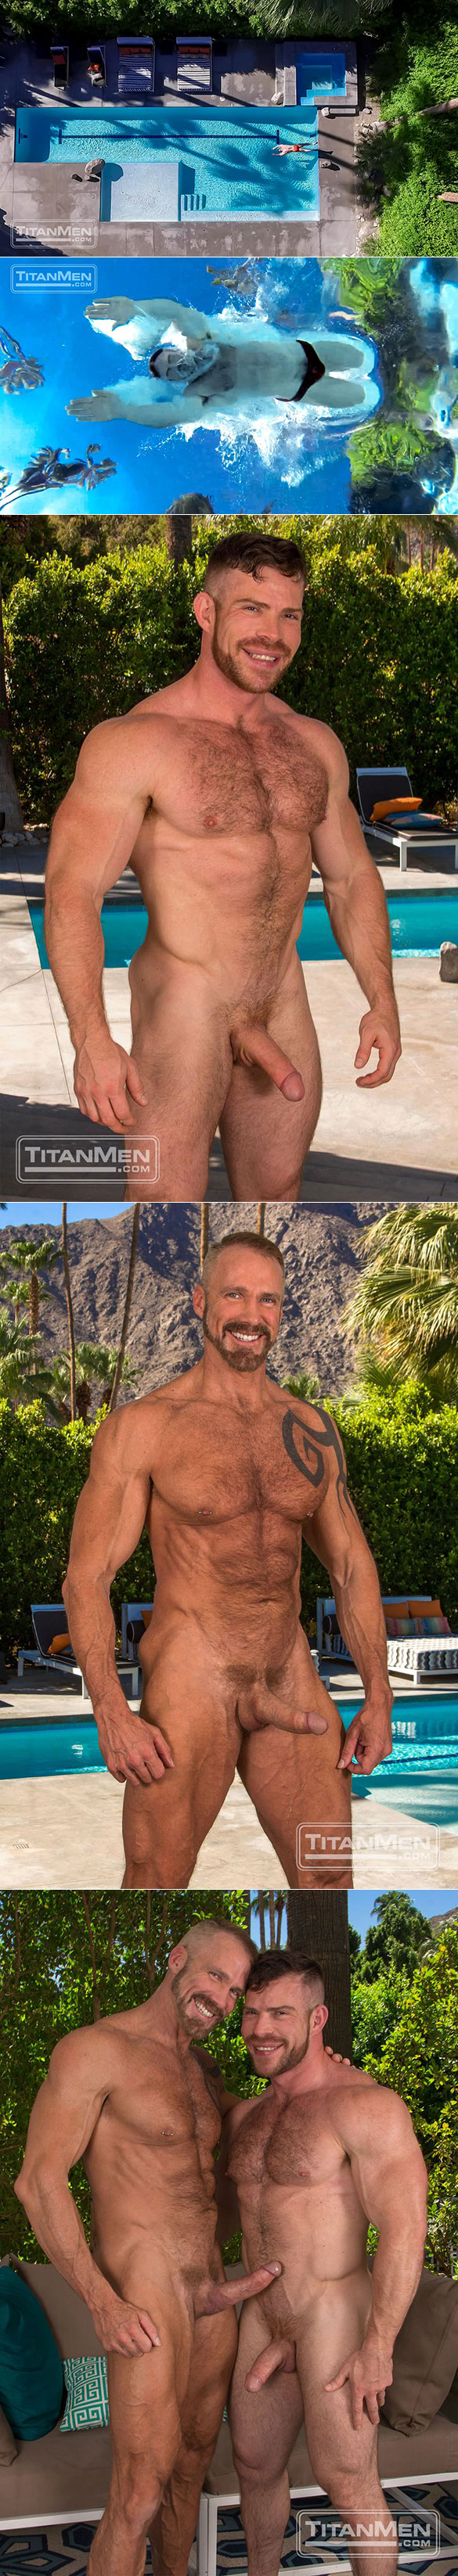 "TitanMen: Dallas Steele and Liam Knox bang each other in ""2 Men Kiss"""